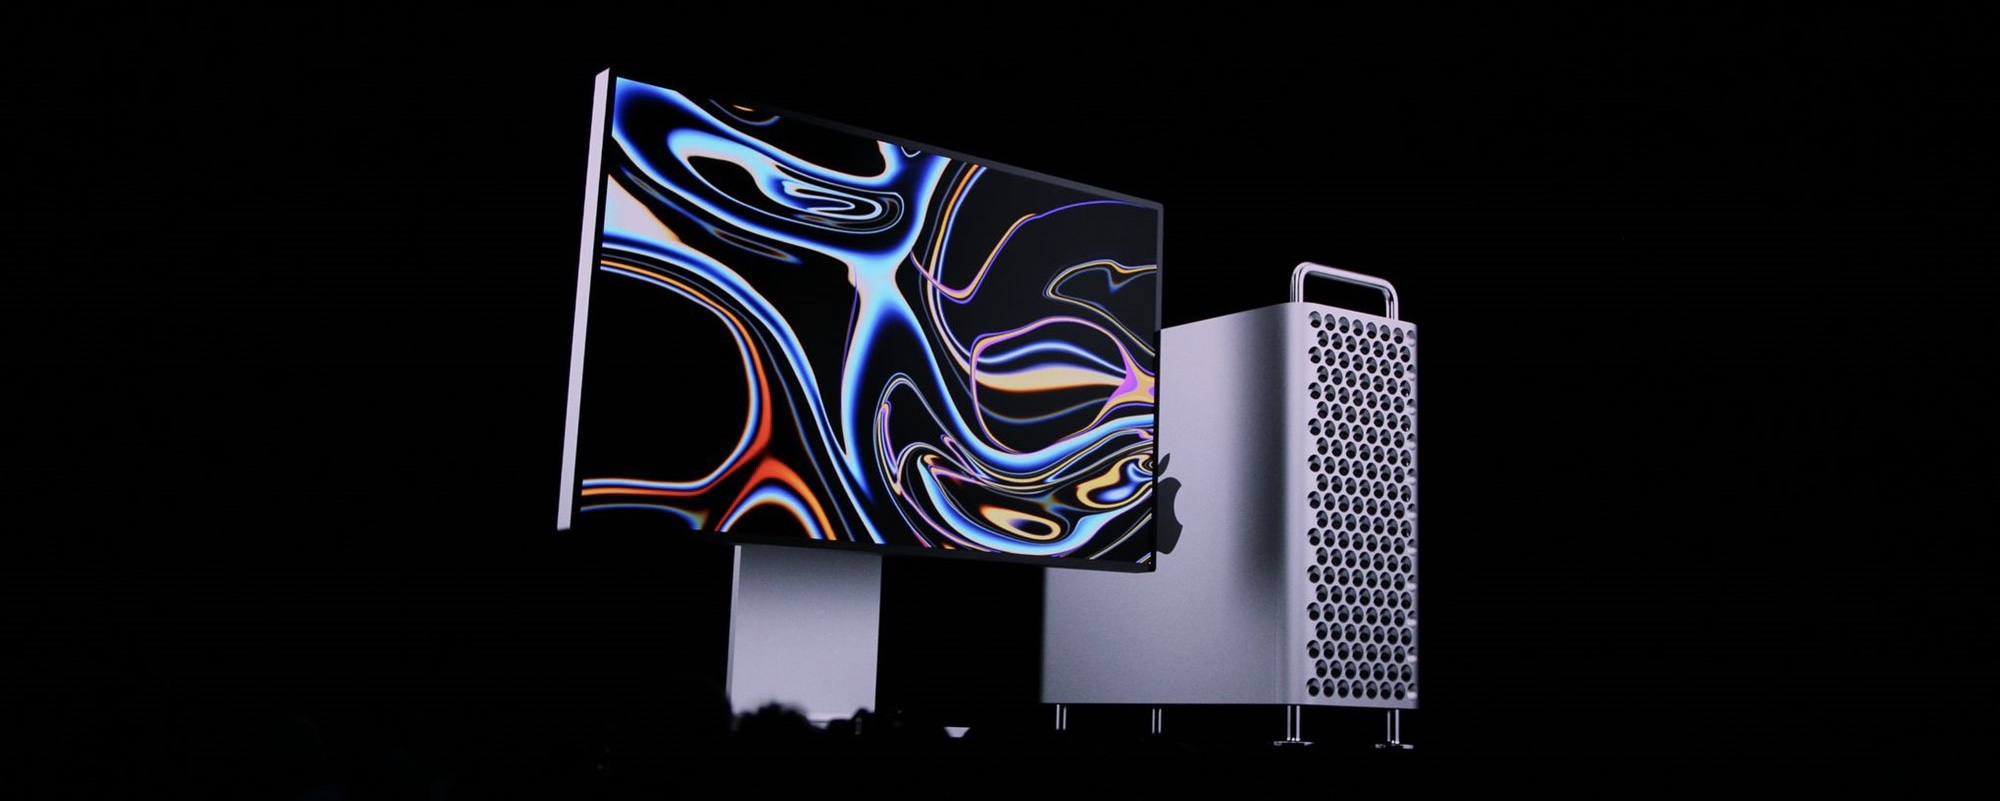 The new Mac Pro and Apple Pro Display XDR